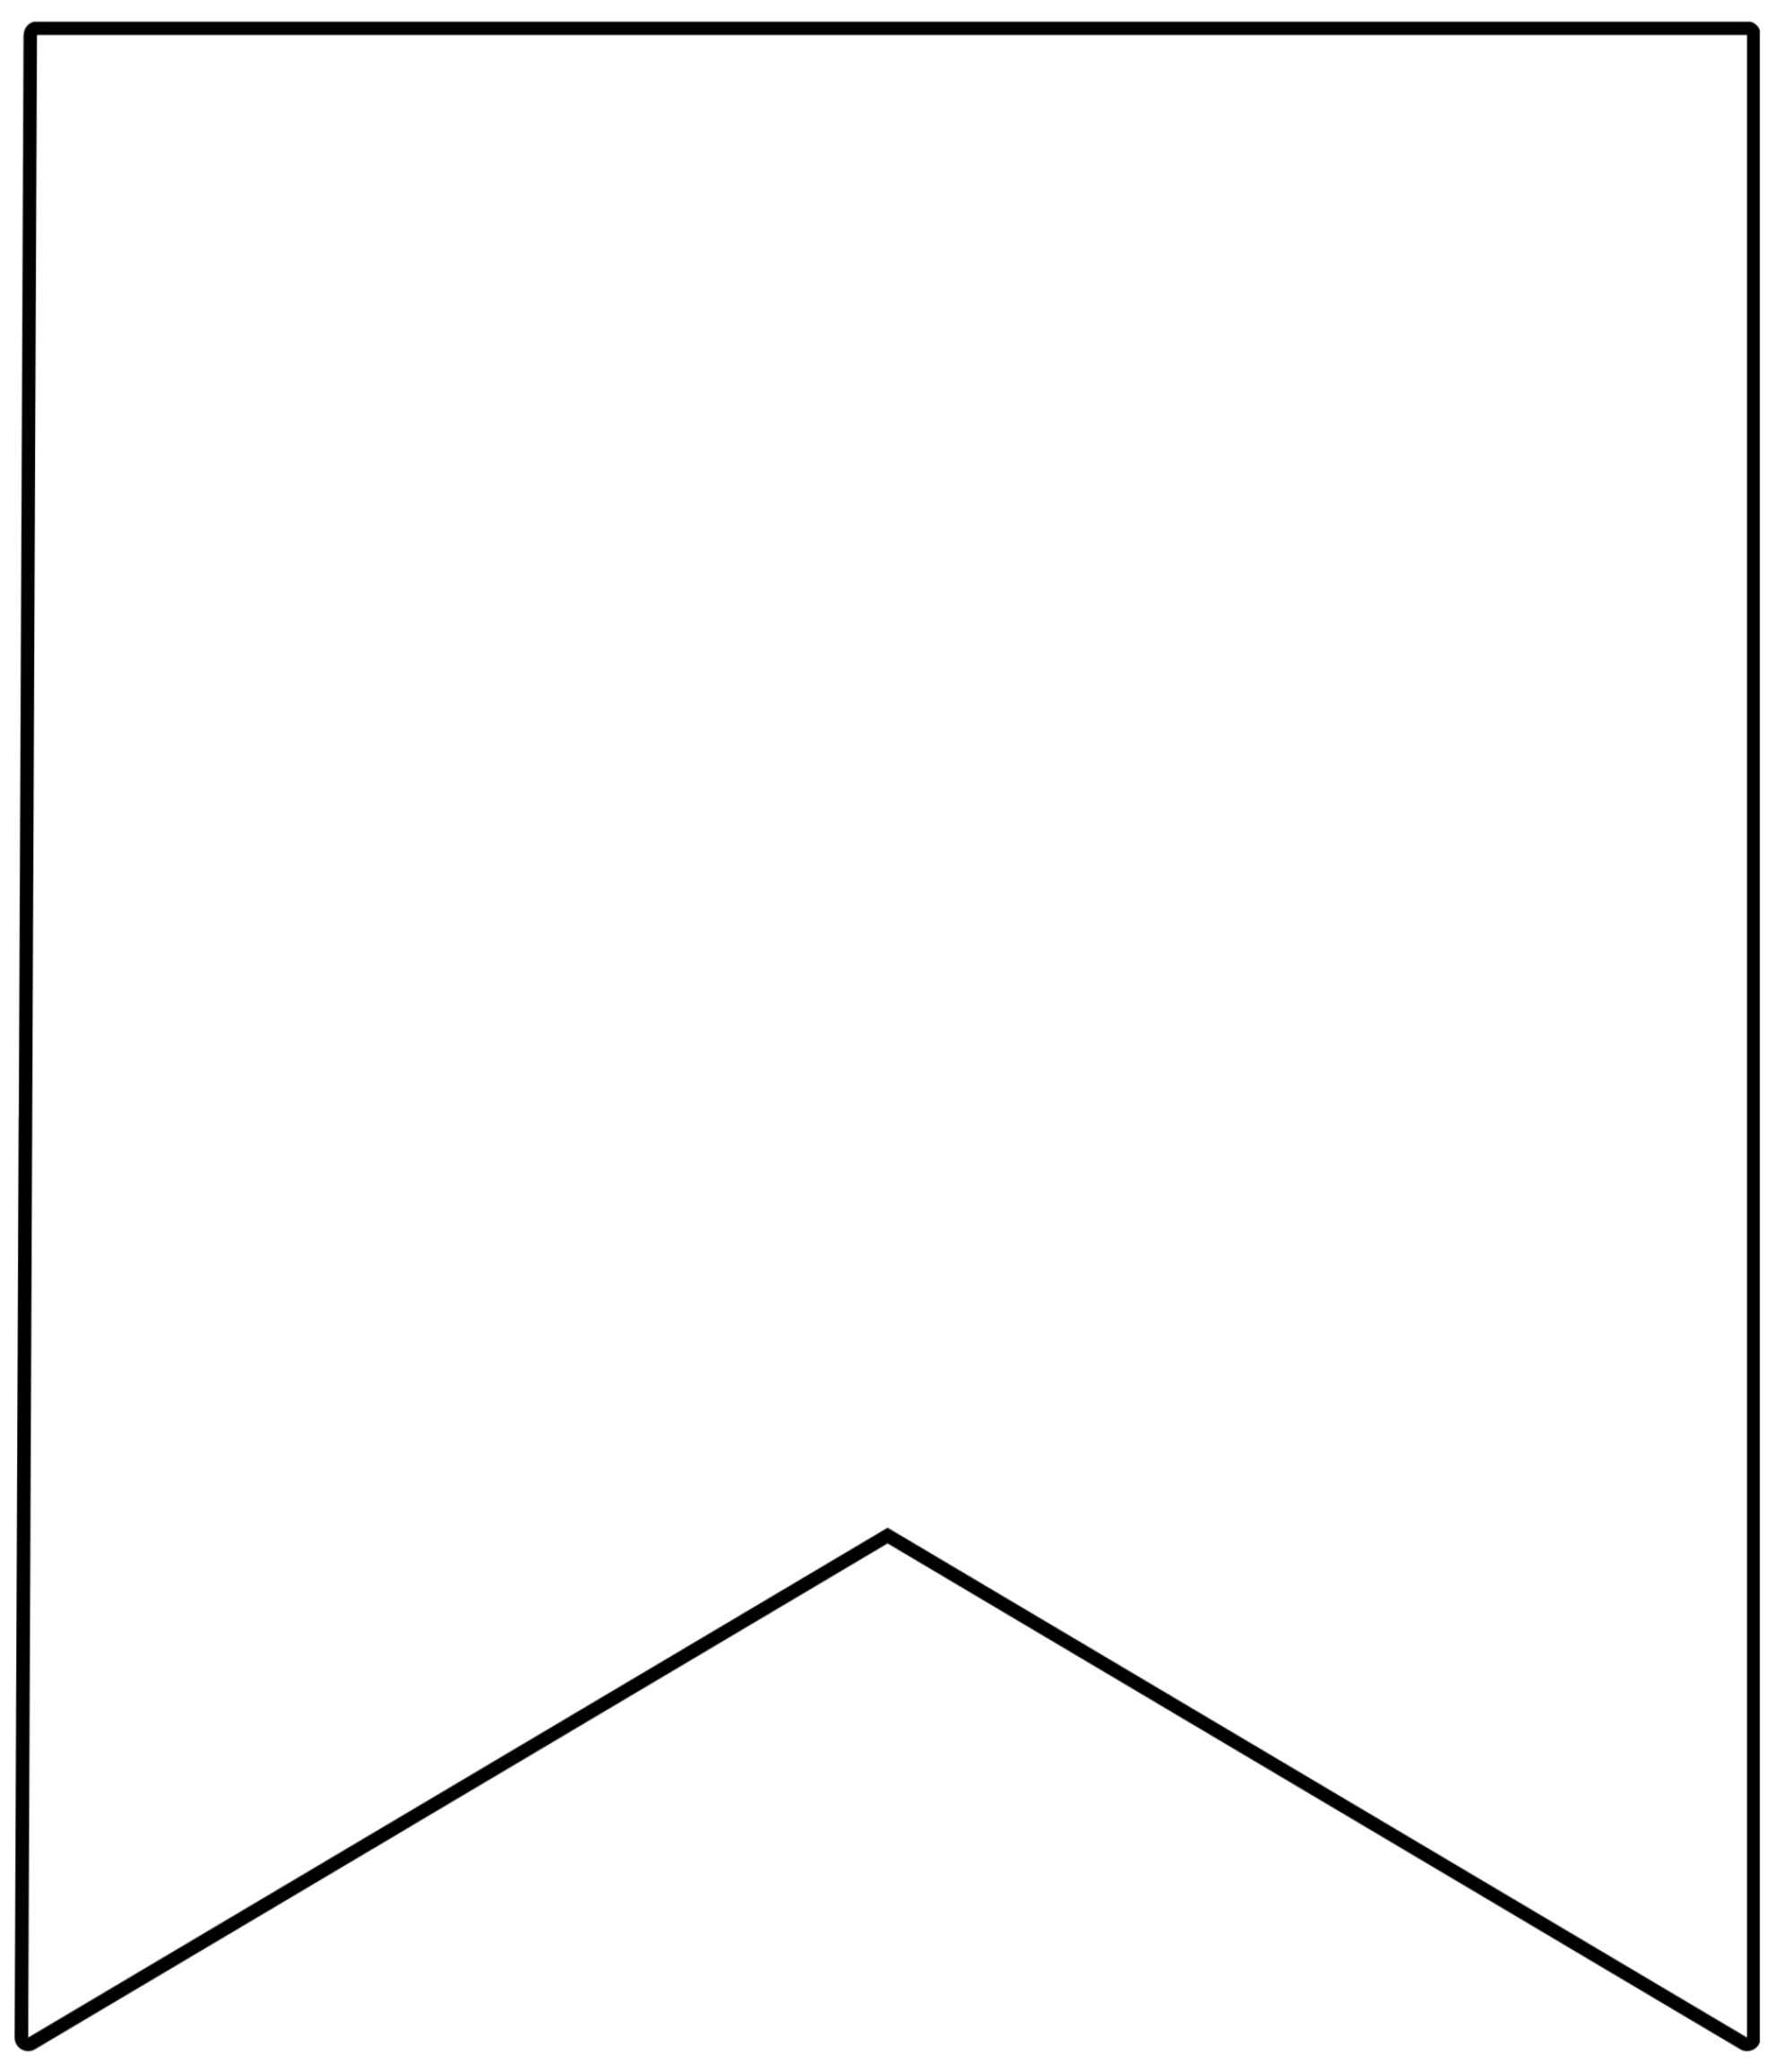 Free Printable Banner Templates {Blank Banners} - Paper With Regard To Free Printable Pennant Banner Template